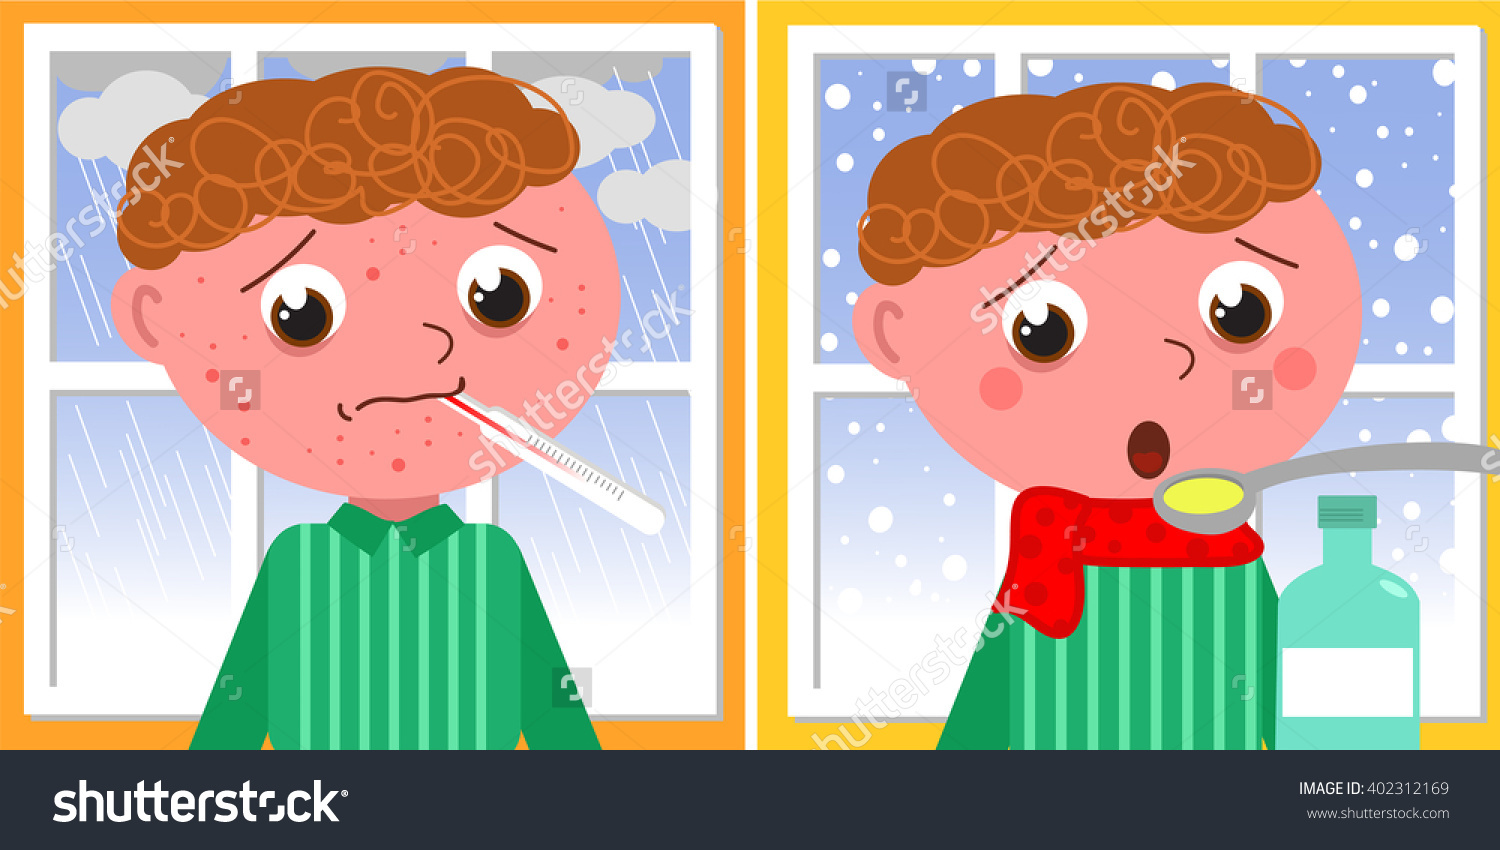 Sad Ill Boy With Red Pustules In Winter With Bad Weather, Vector.